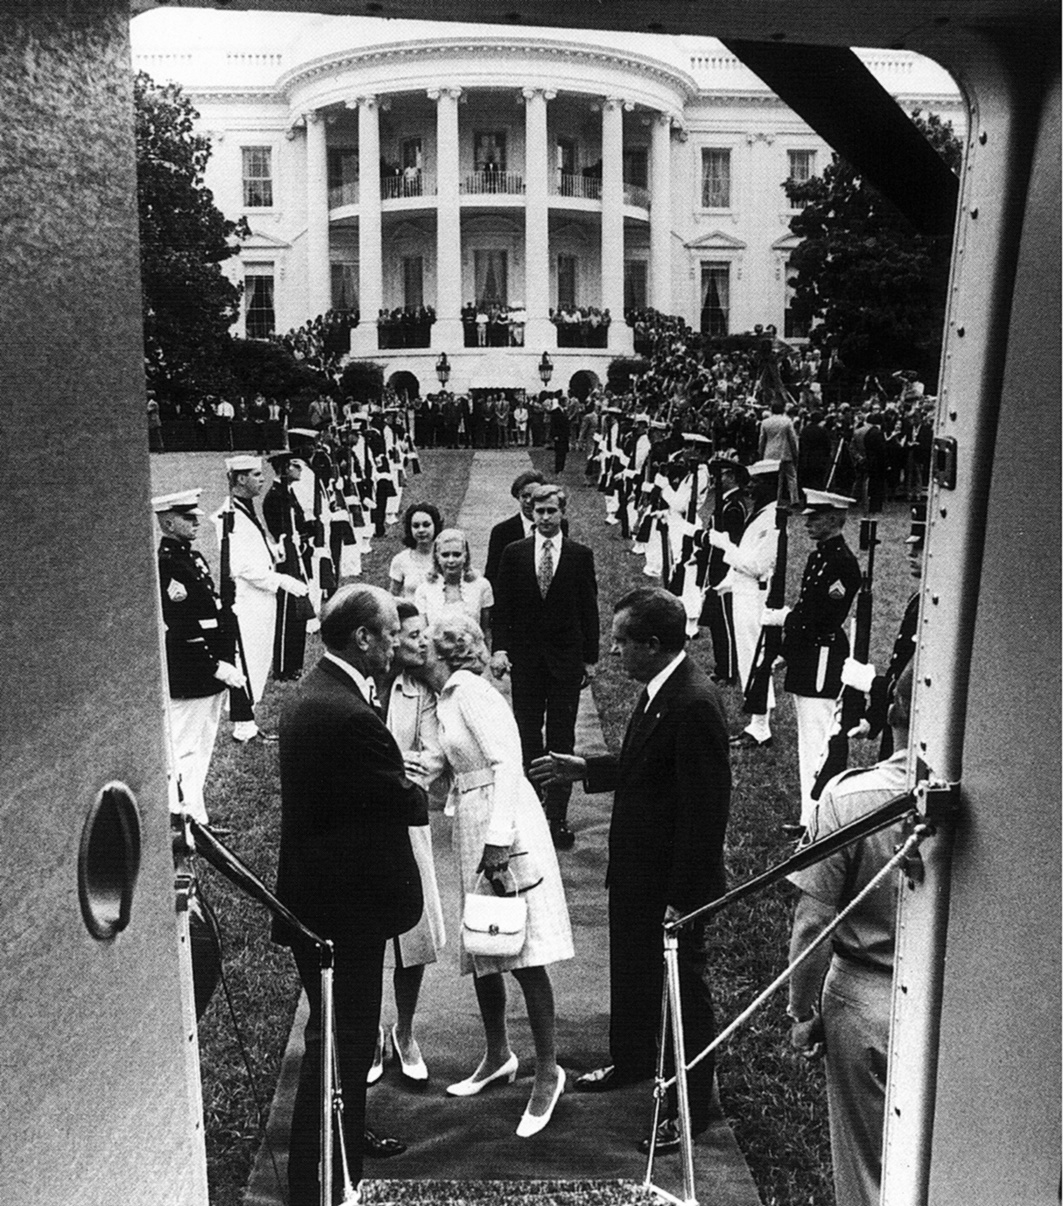 View is from inside the aircraft looking toward the White House. Soldiers stand at attention forming two lines from the White house to the aircraft. Mrs. Nixon is kissing Mrs. Ford on the cheek as she prepares to come aboard. Presidents Nixon and Ford look on.